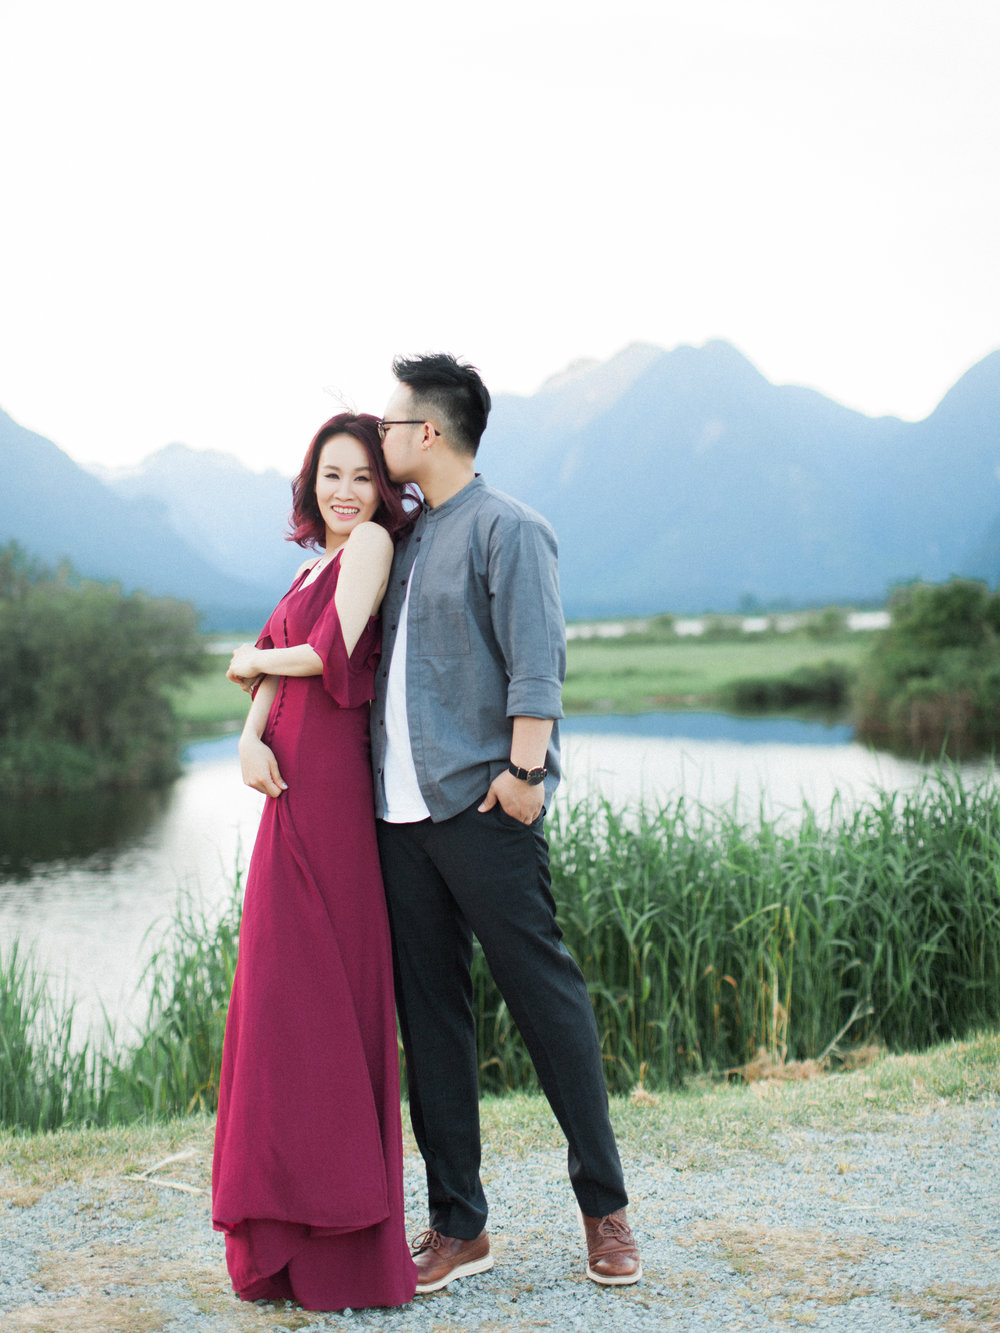 20170528Maple_Ridge_Engagement_Mary_Marco_Prewedding-32 copy.jpg